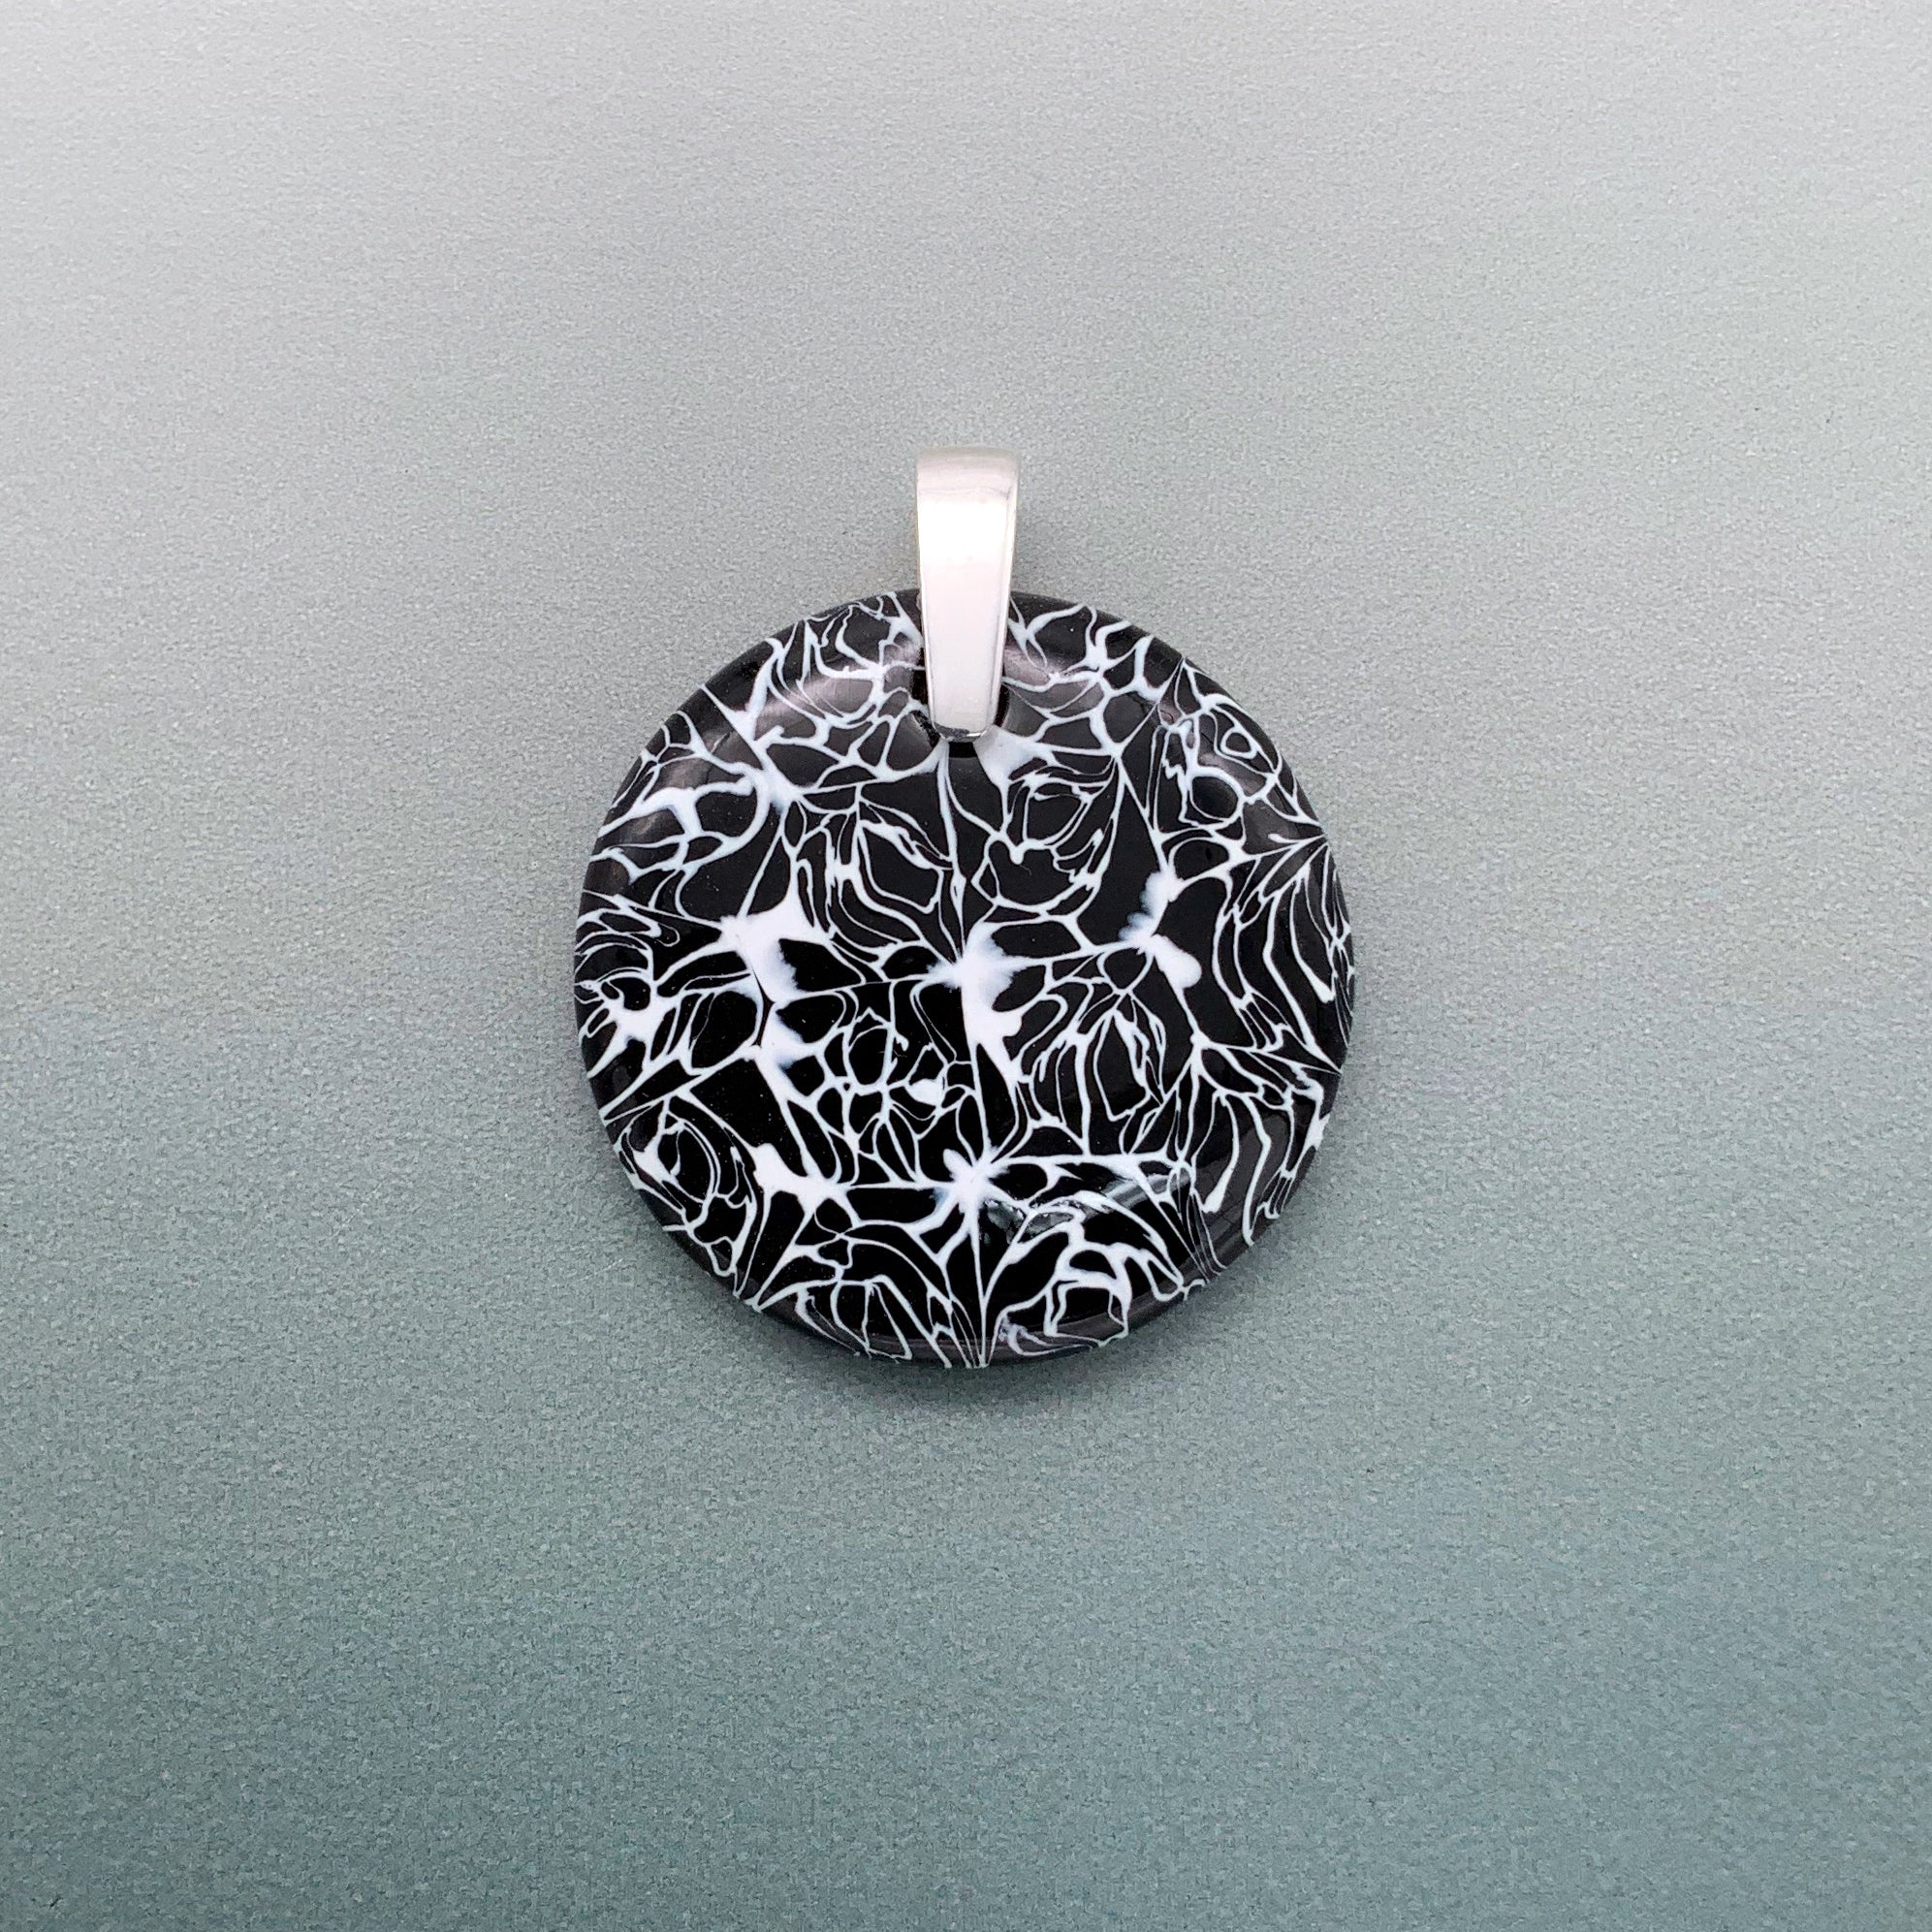 Marmo 35mm round glass pendant - black and white marble